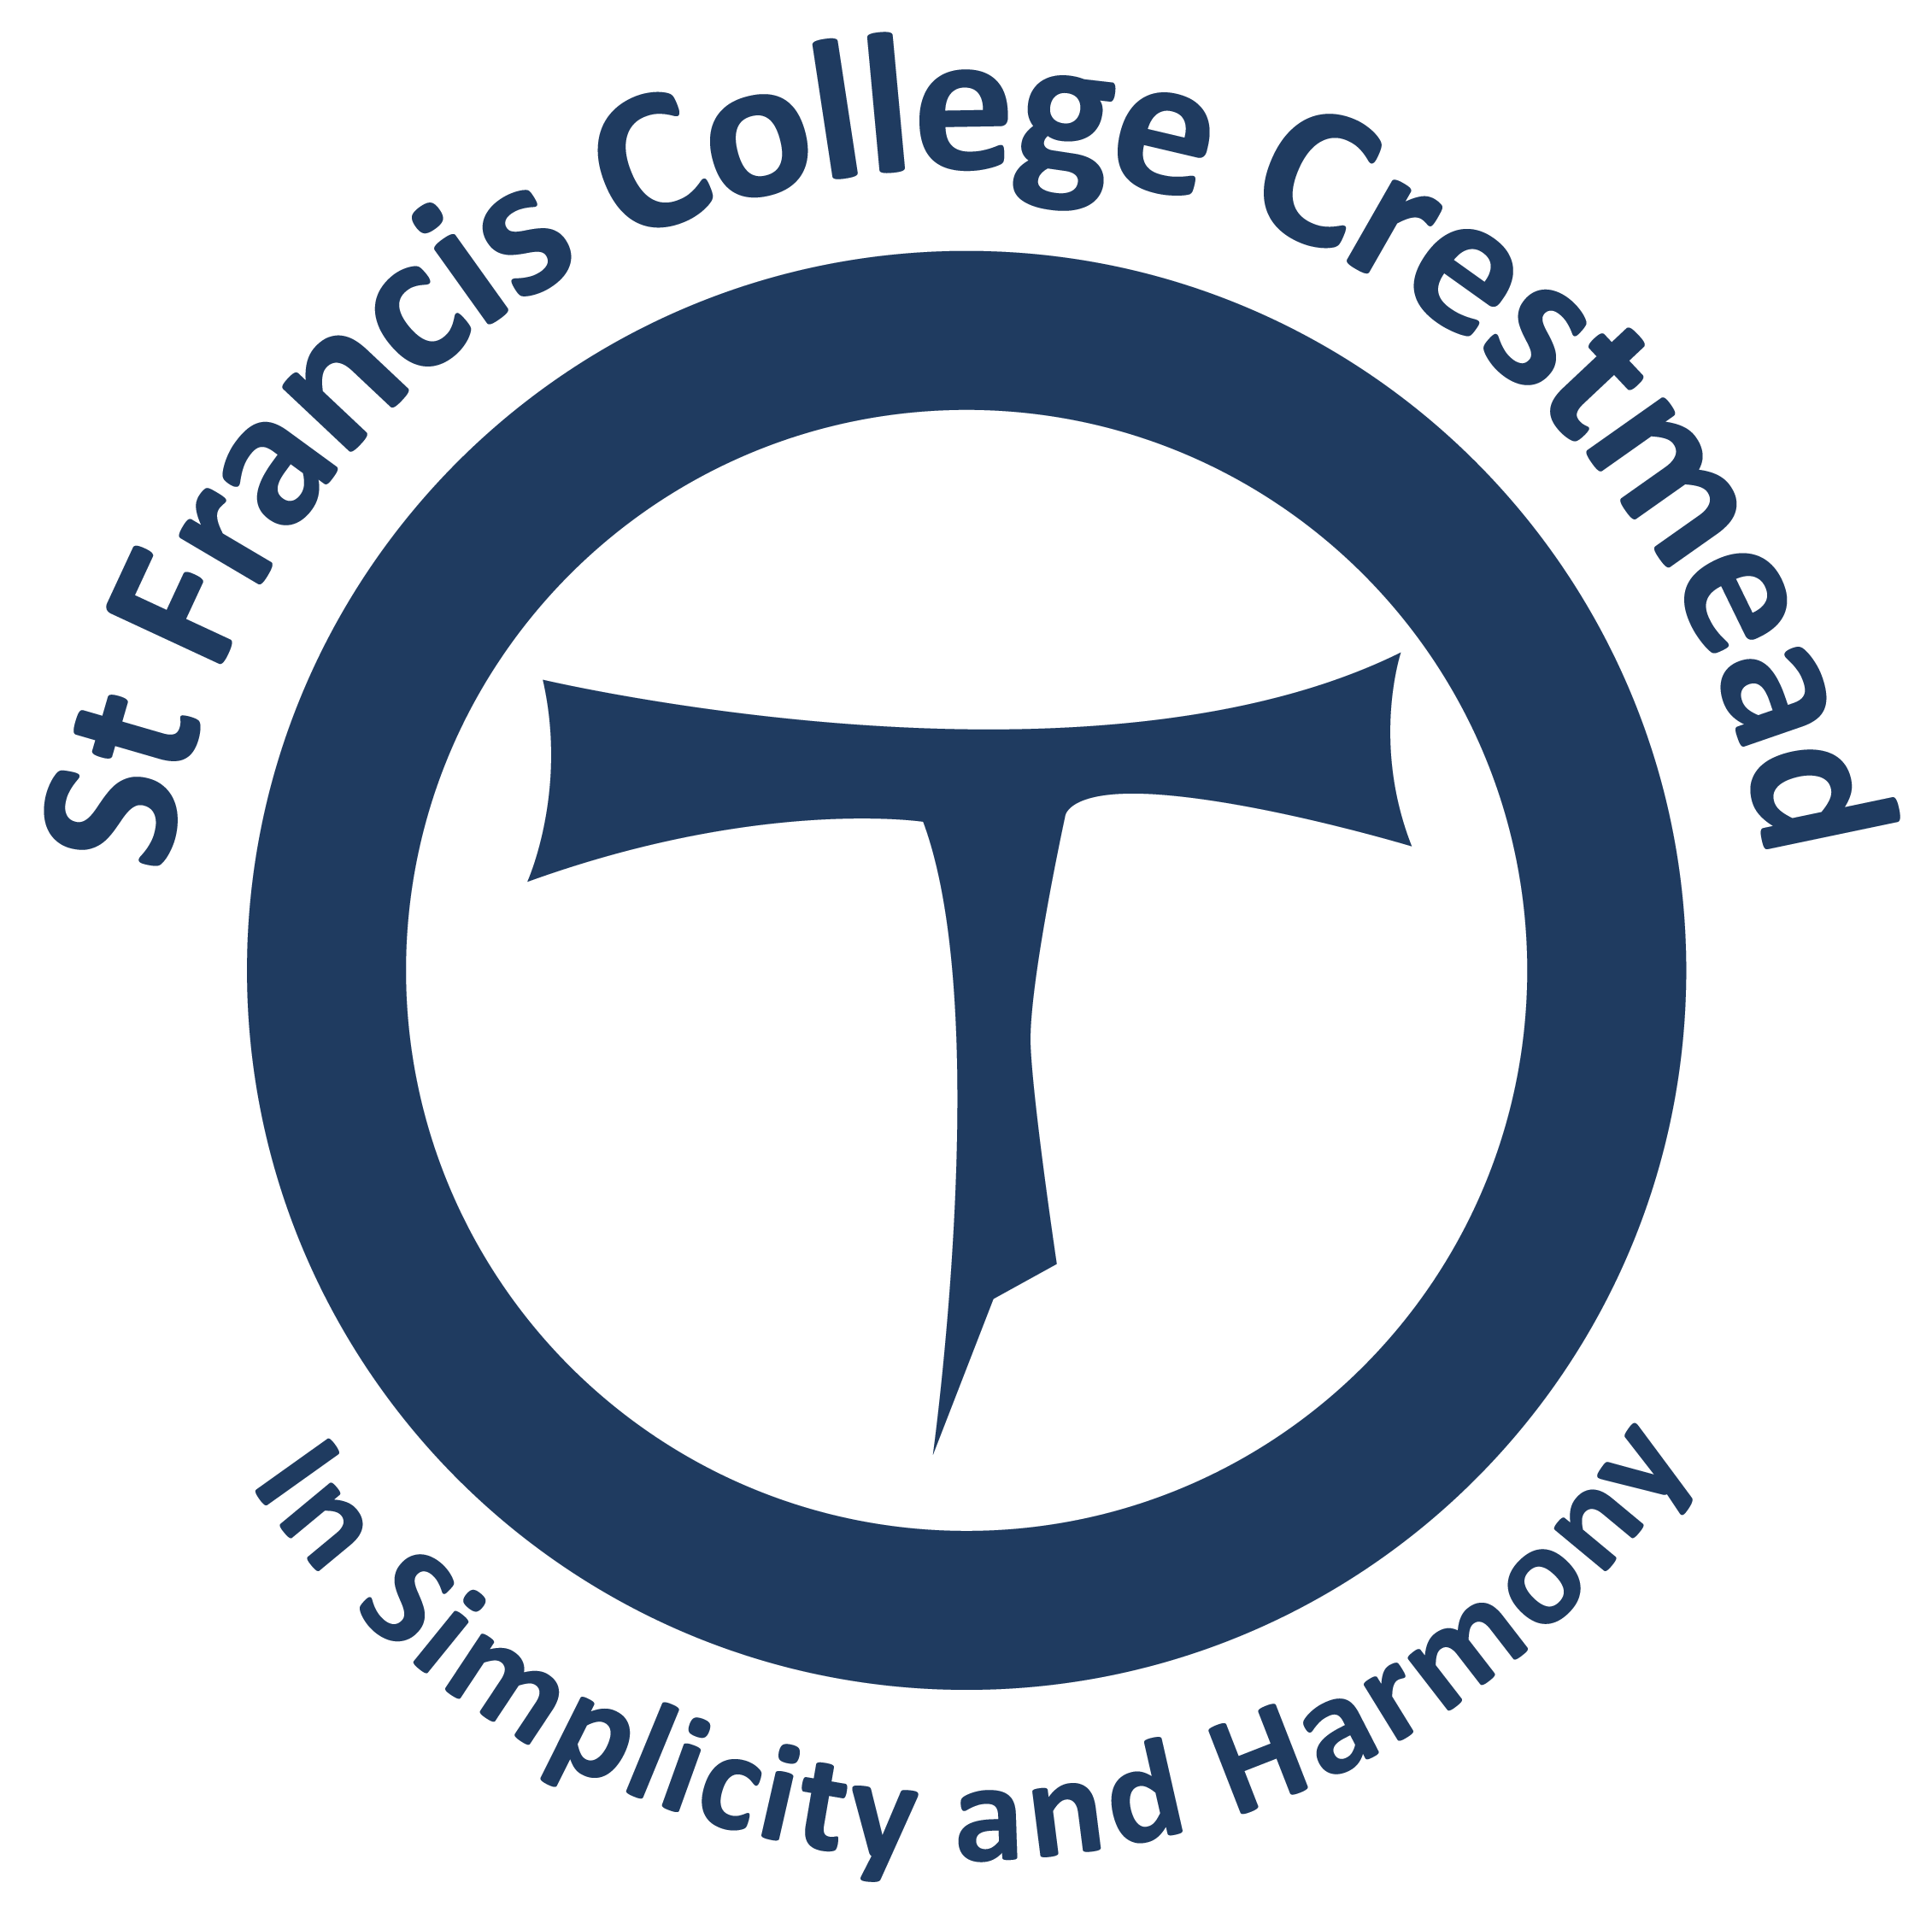 St Francis College, Crestmead